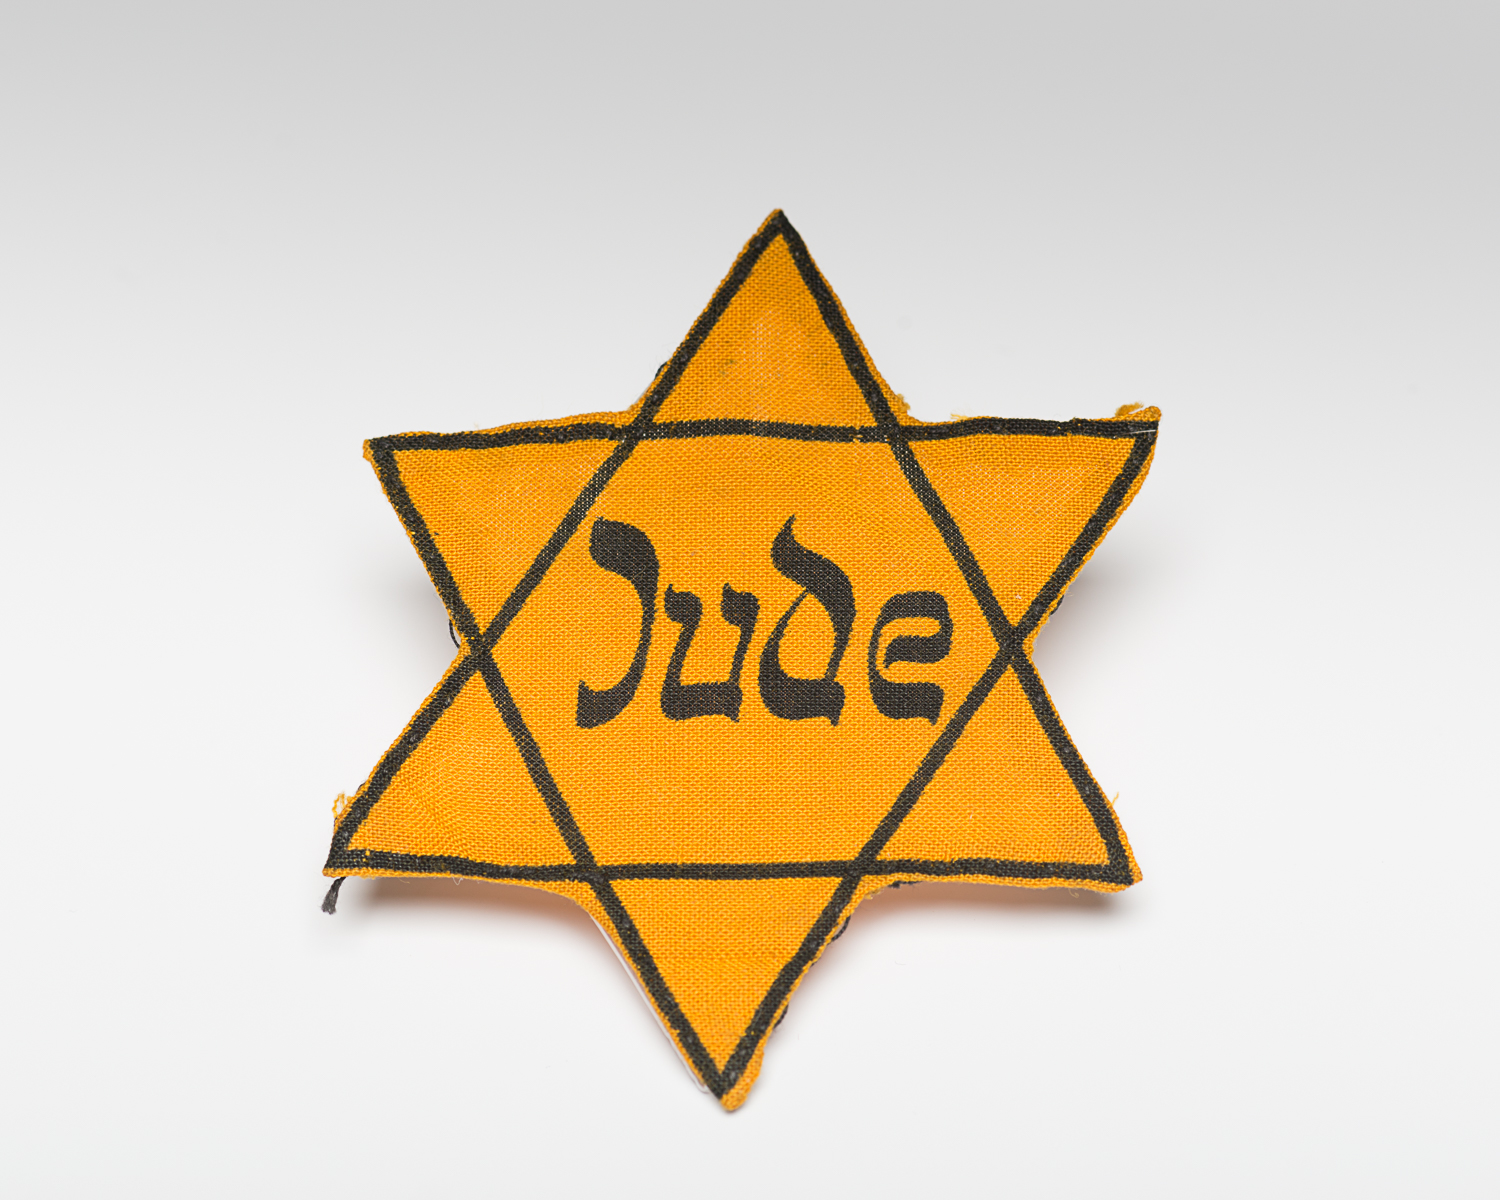 This badge was worn by George Ehrman while he was living in Prague. (Photo: Peter Berra)